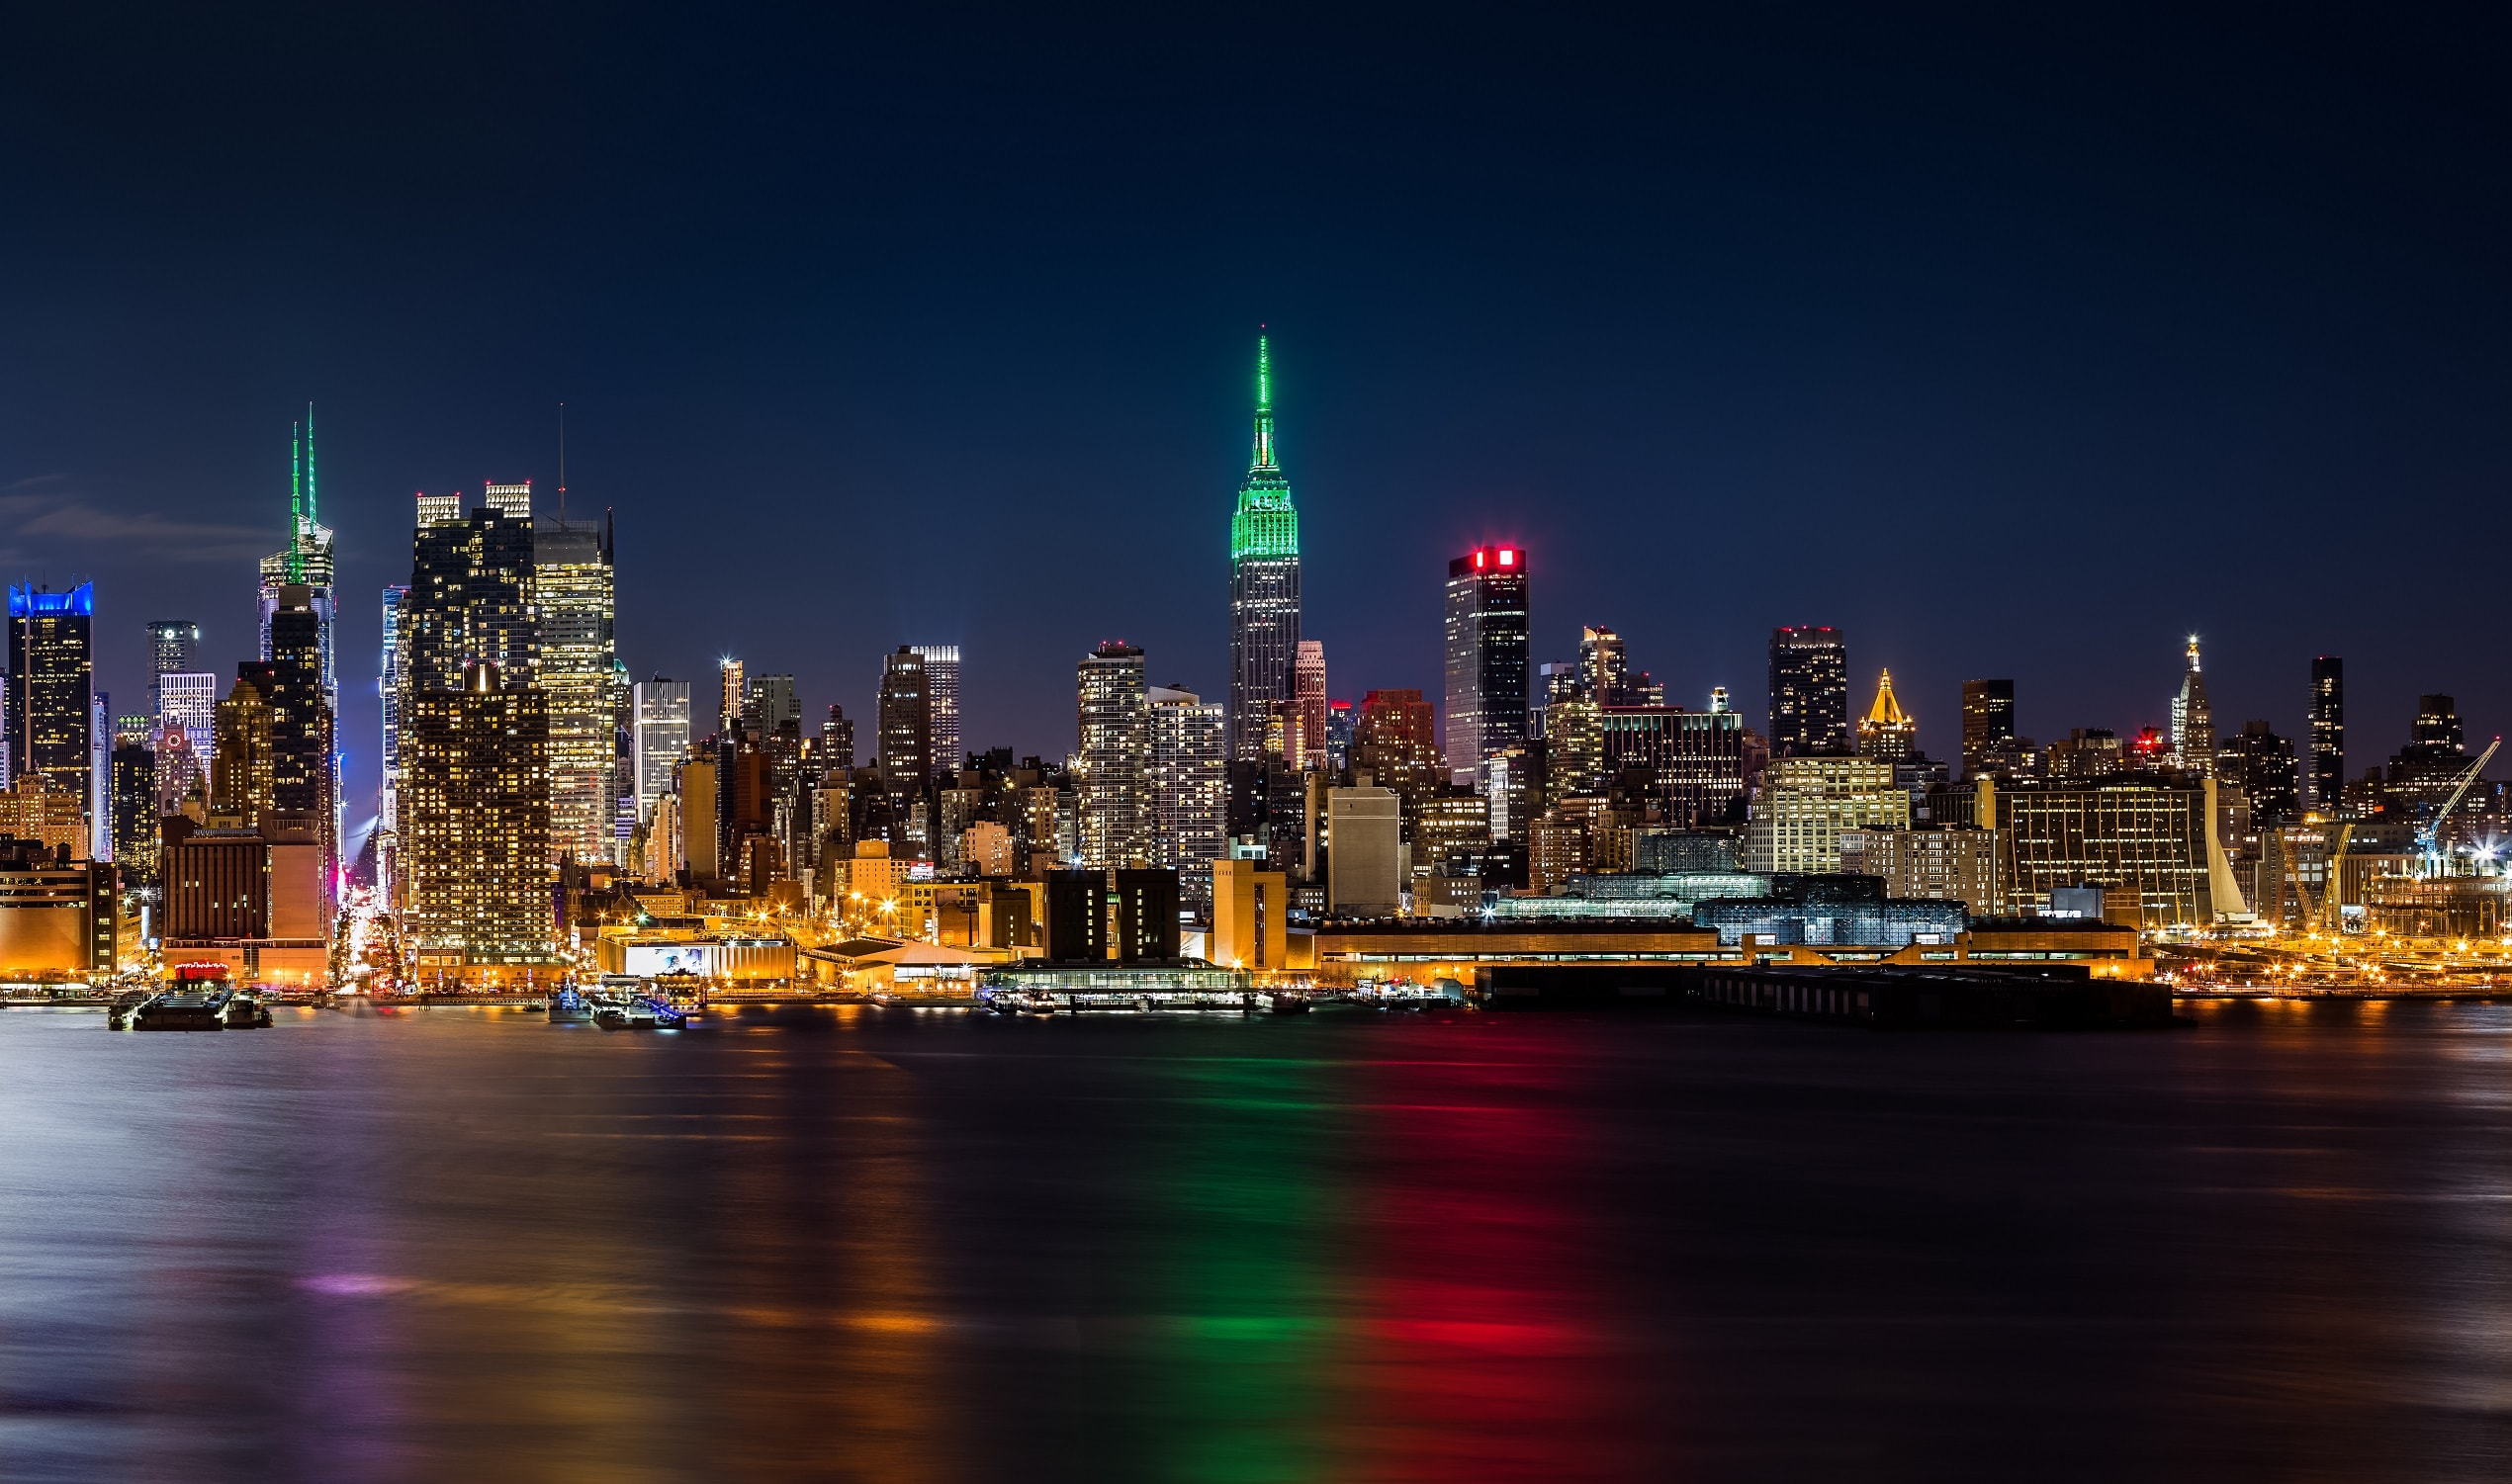 The New York city skyline viewed from the water at night, with the city lights reflecting in the water